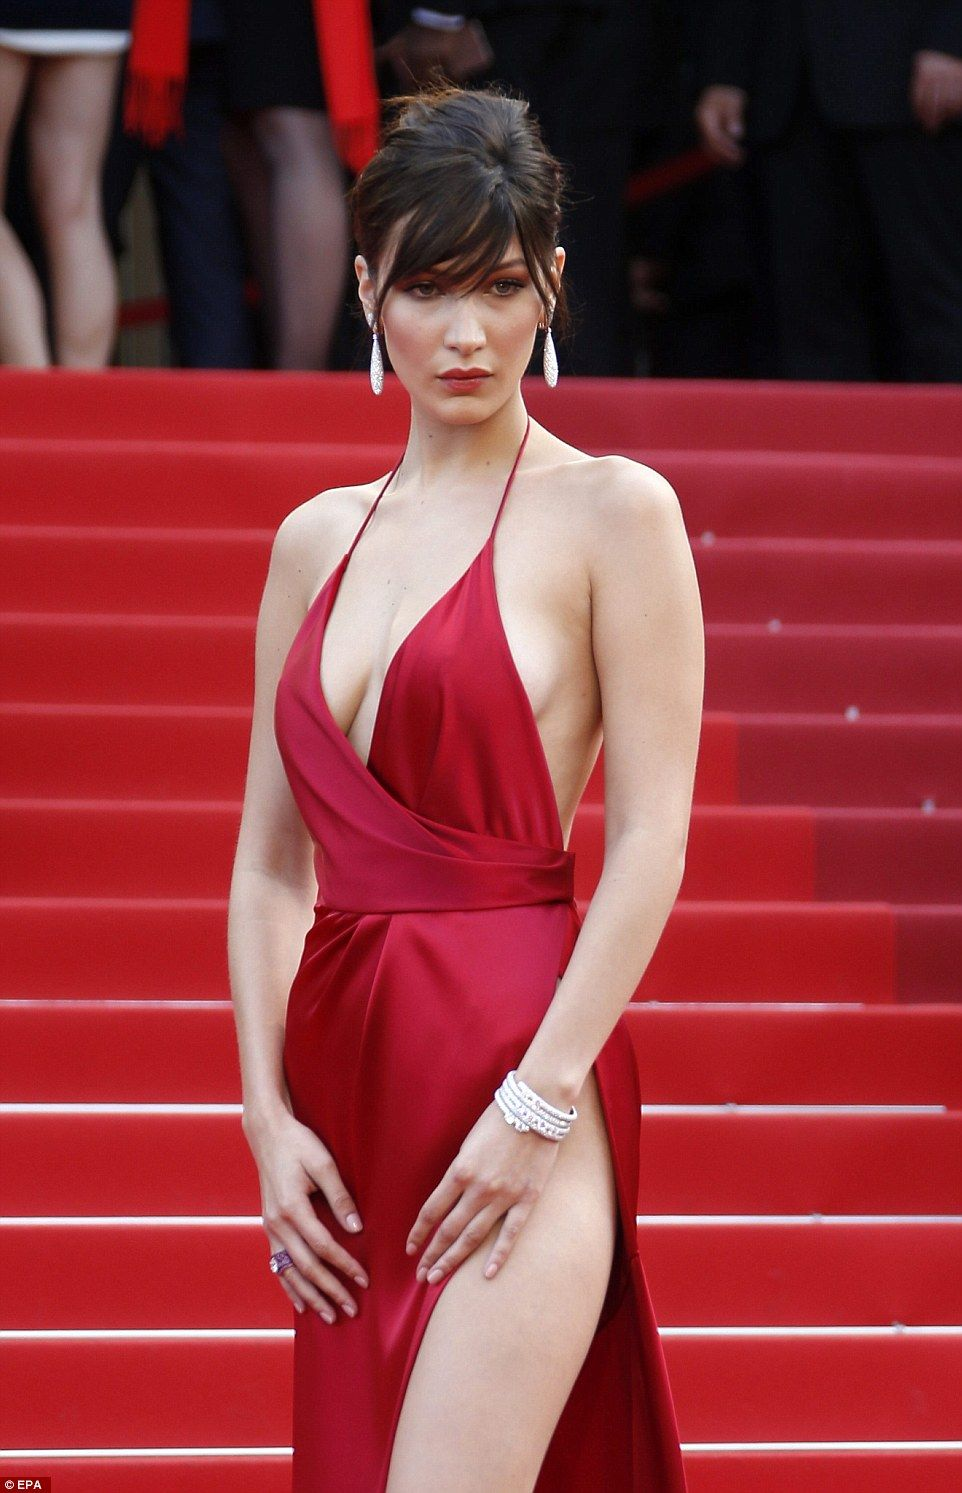 Bella hadid foregoes underwear in perliously slashed red gown